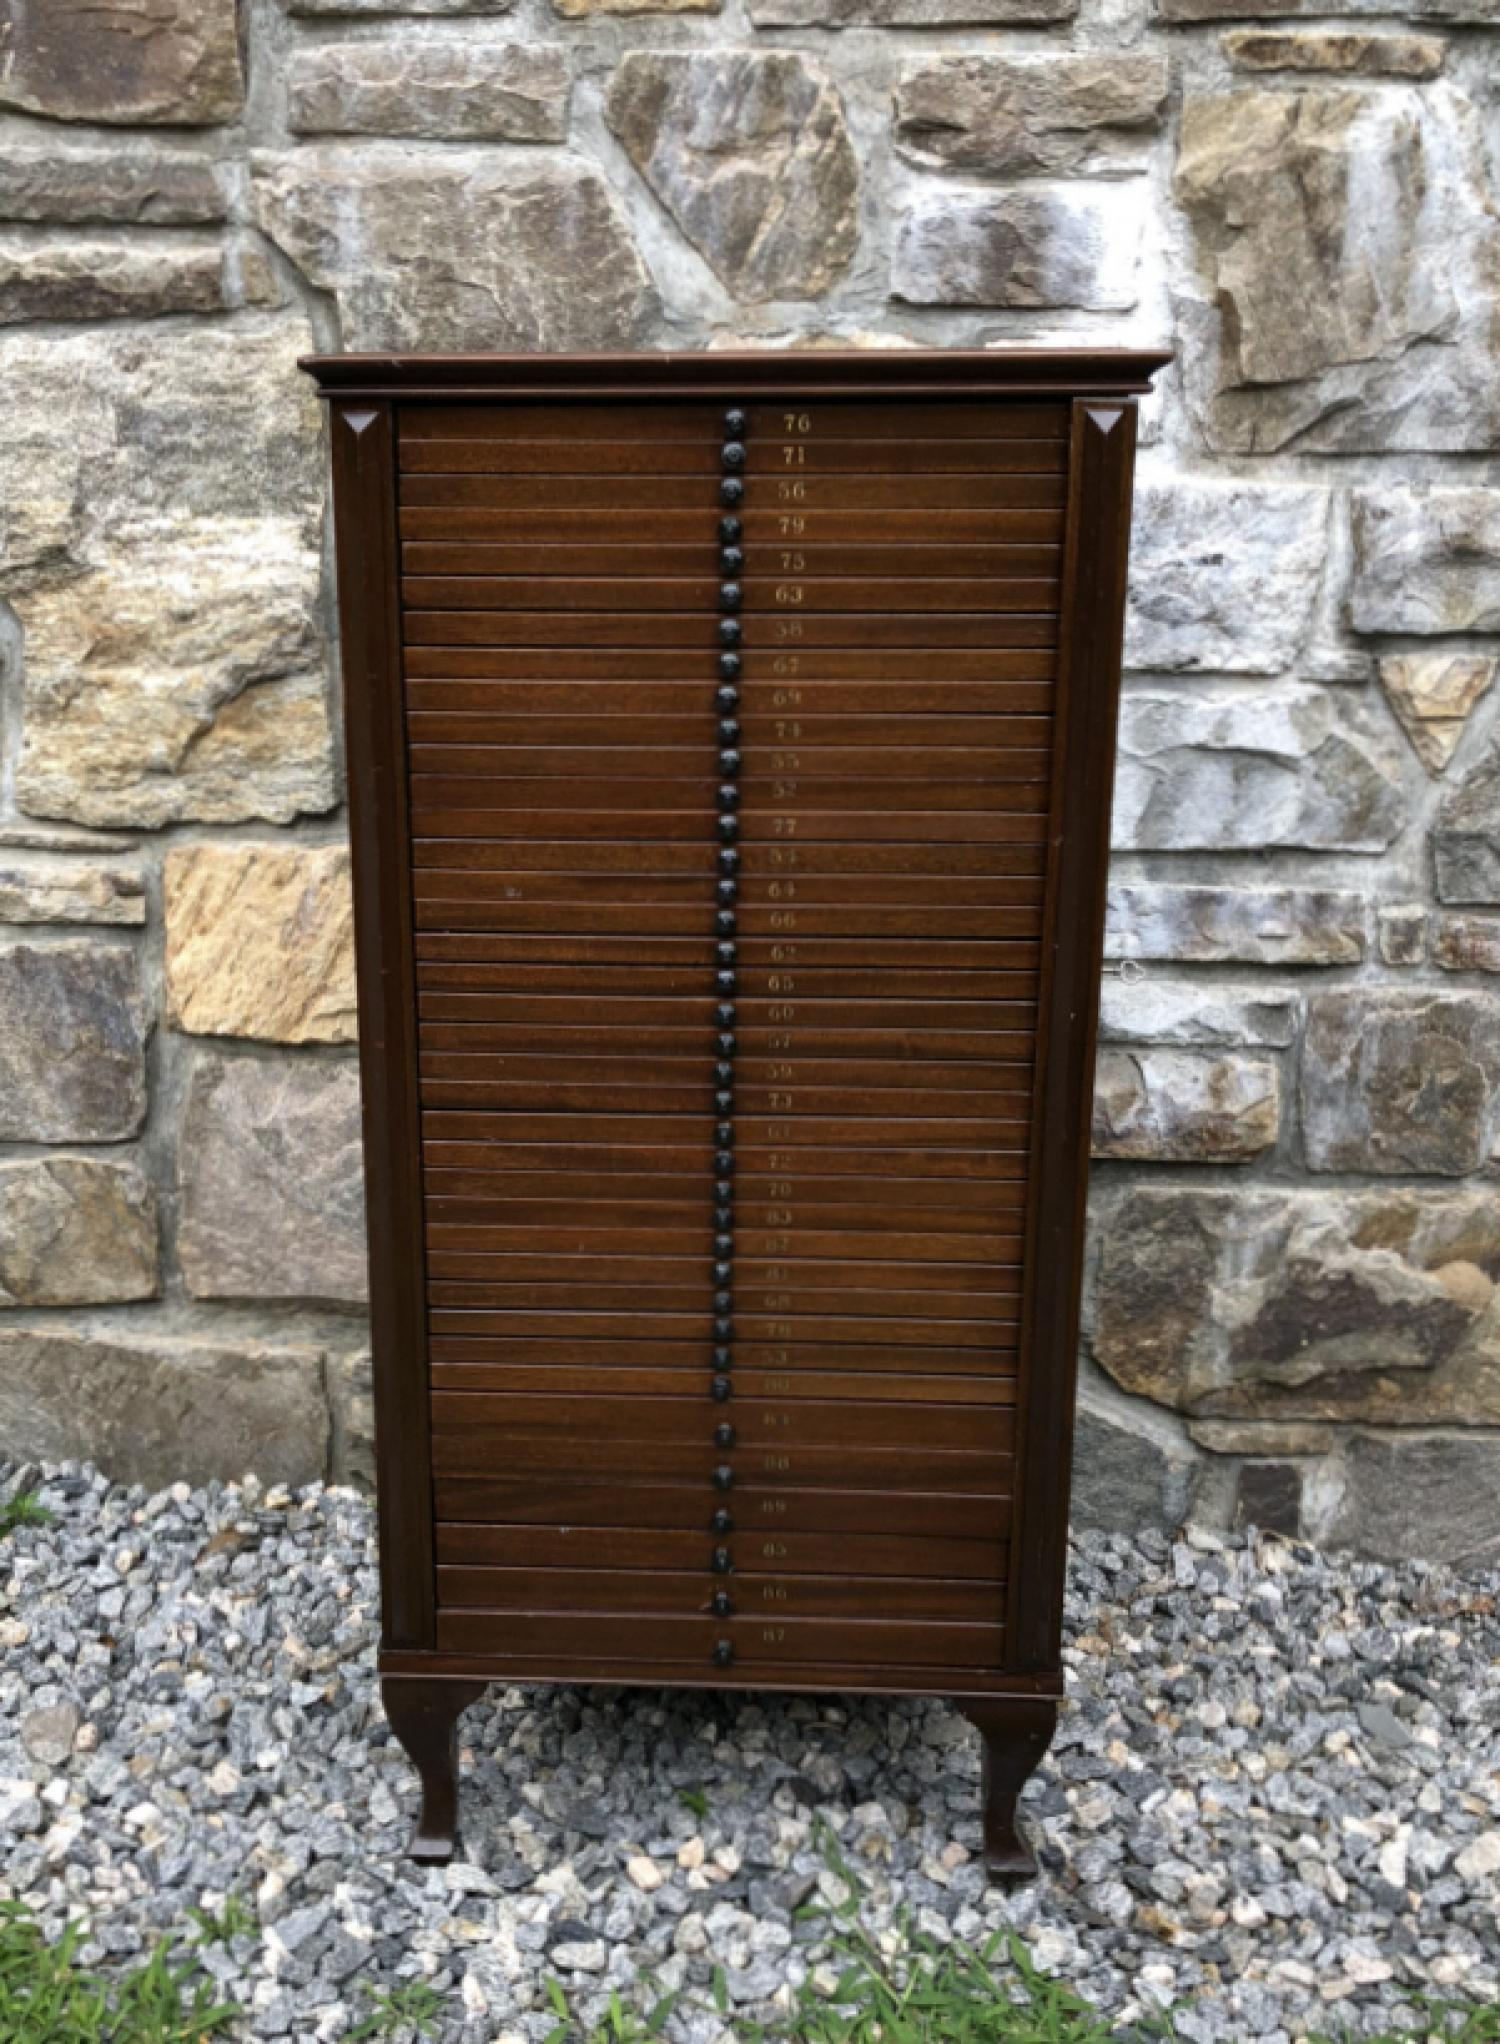 Vintage collectors cabinet with 38 drawers c1900